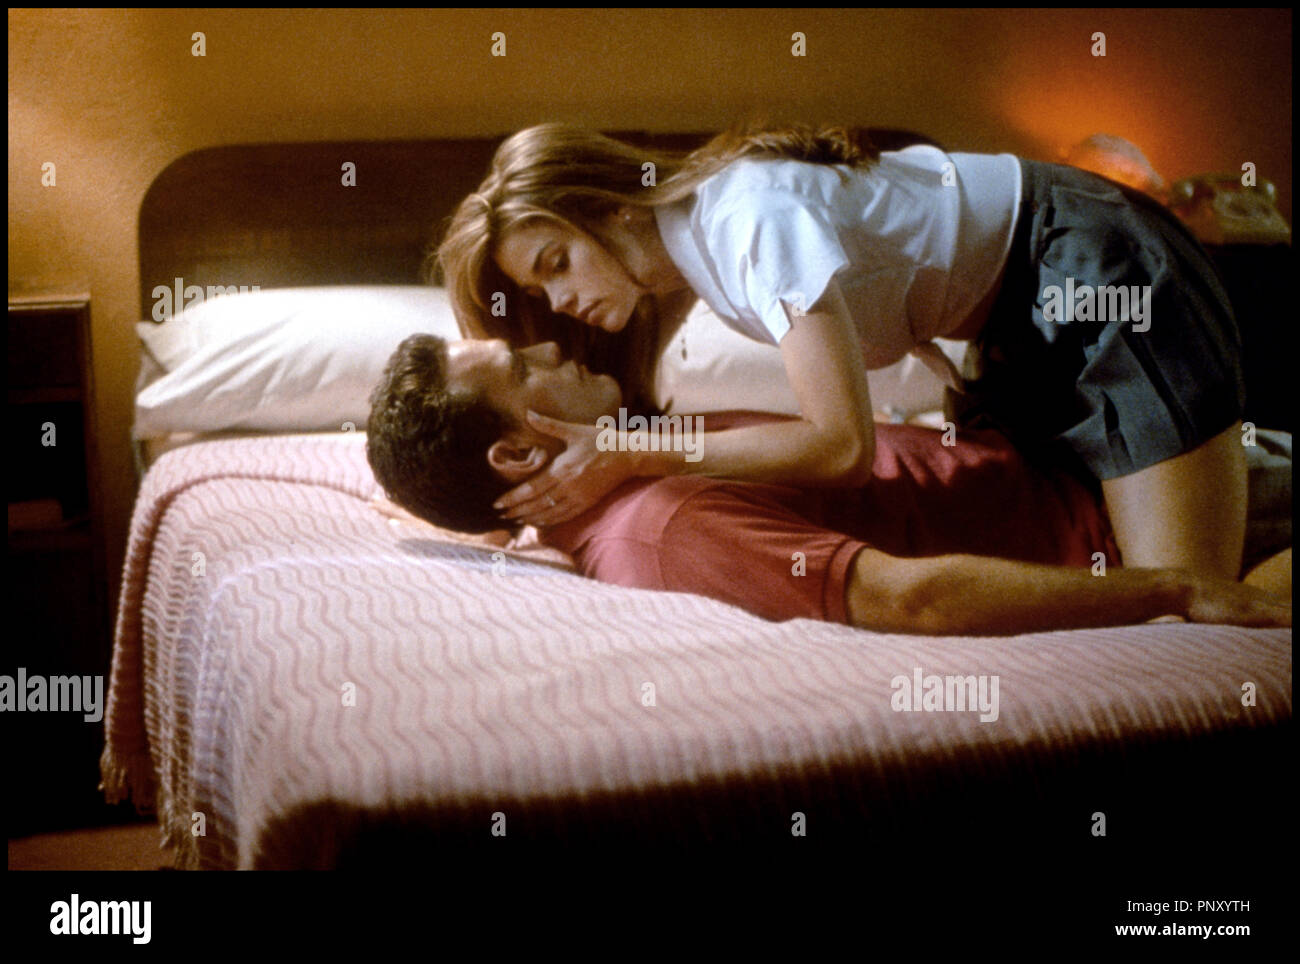 Prod DB © Mandalay / DR SEXCRIMES (WILD THINGS) de John Mc Naughton 1998 USA avec Matt Dillon et Denise Richards embrasser, couple, sexe, - Stock Image